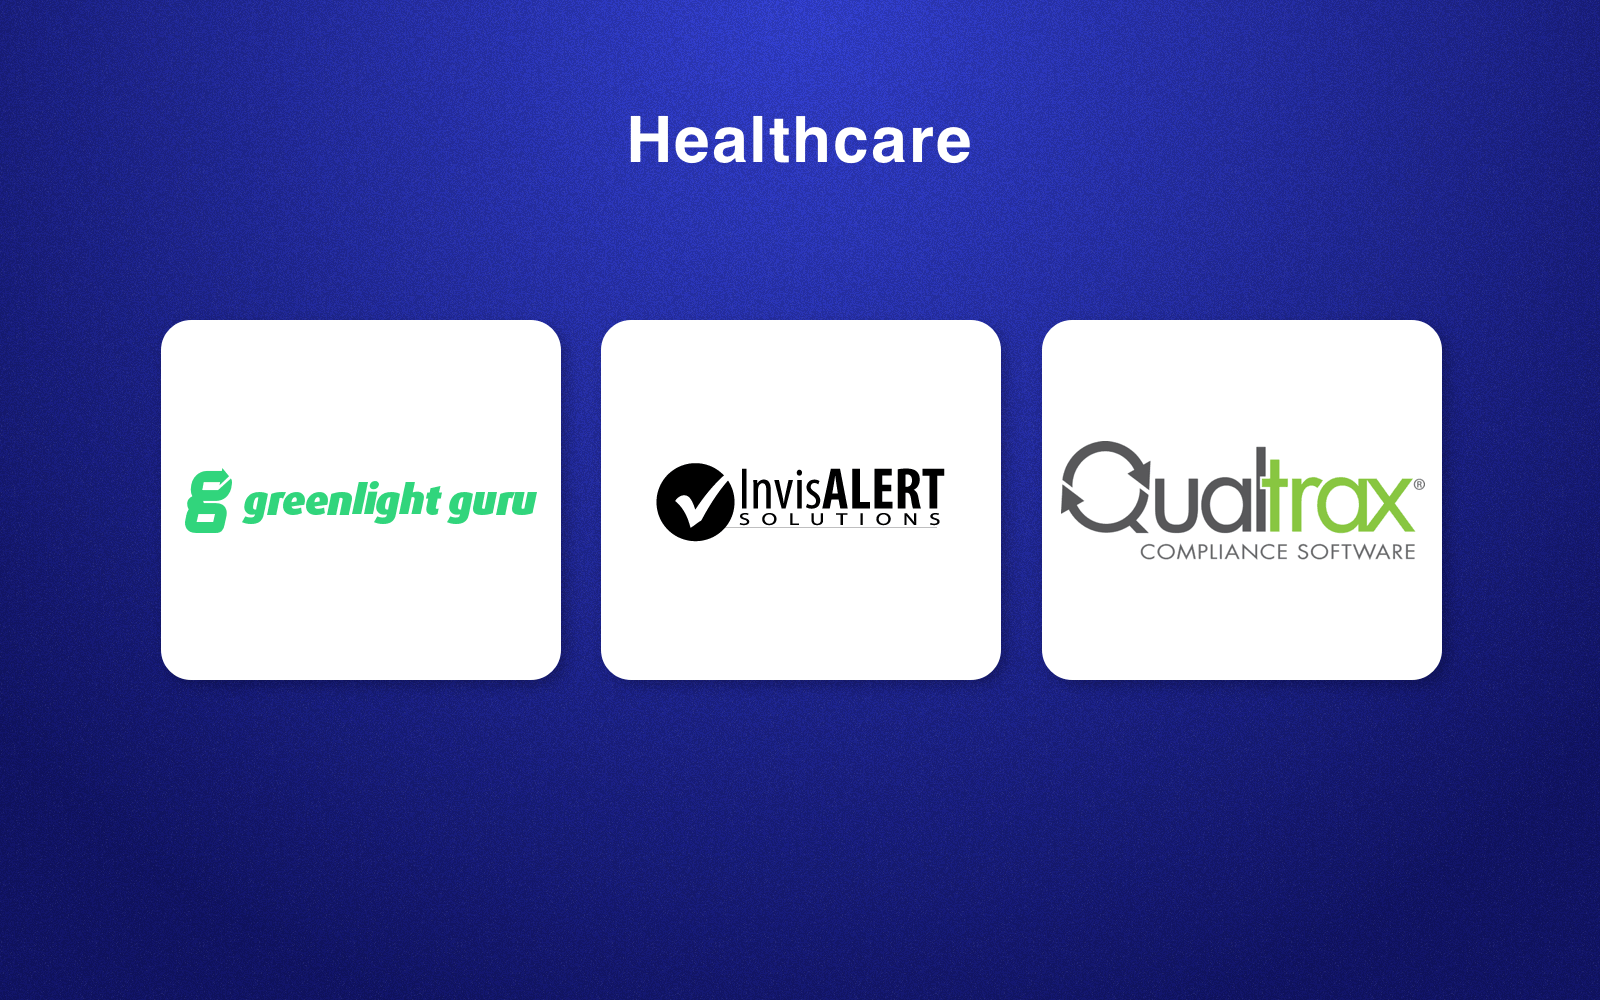 RegTech companies in healthcare field